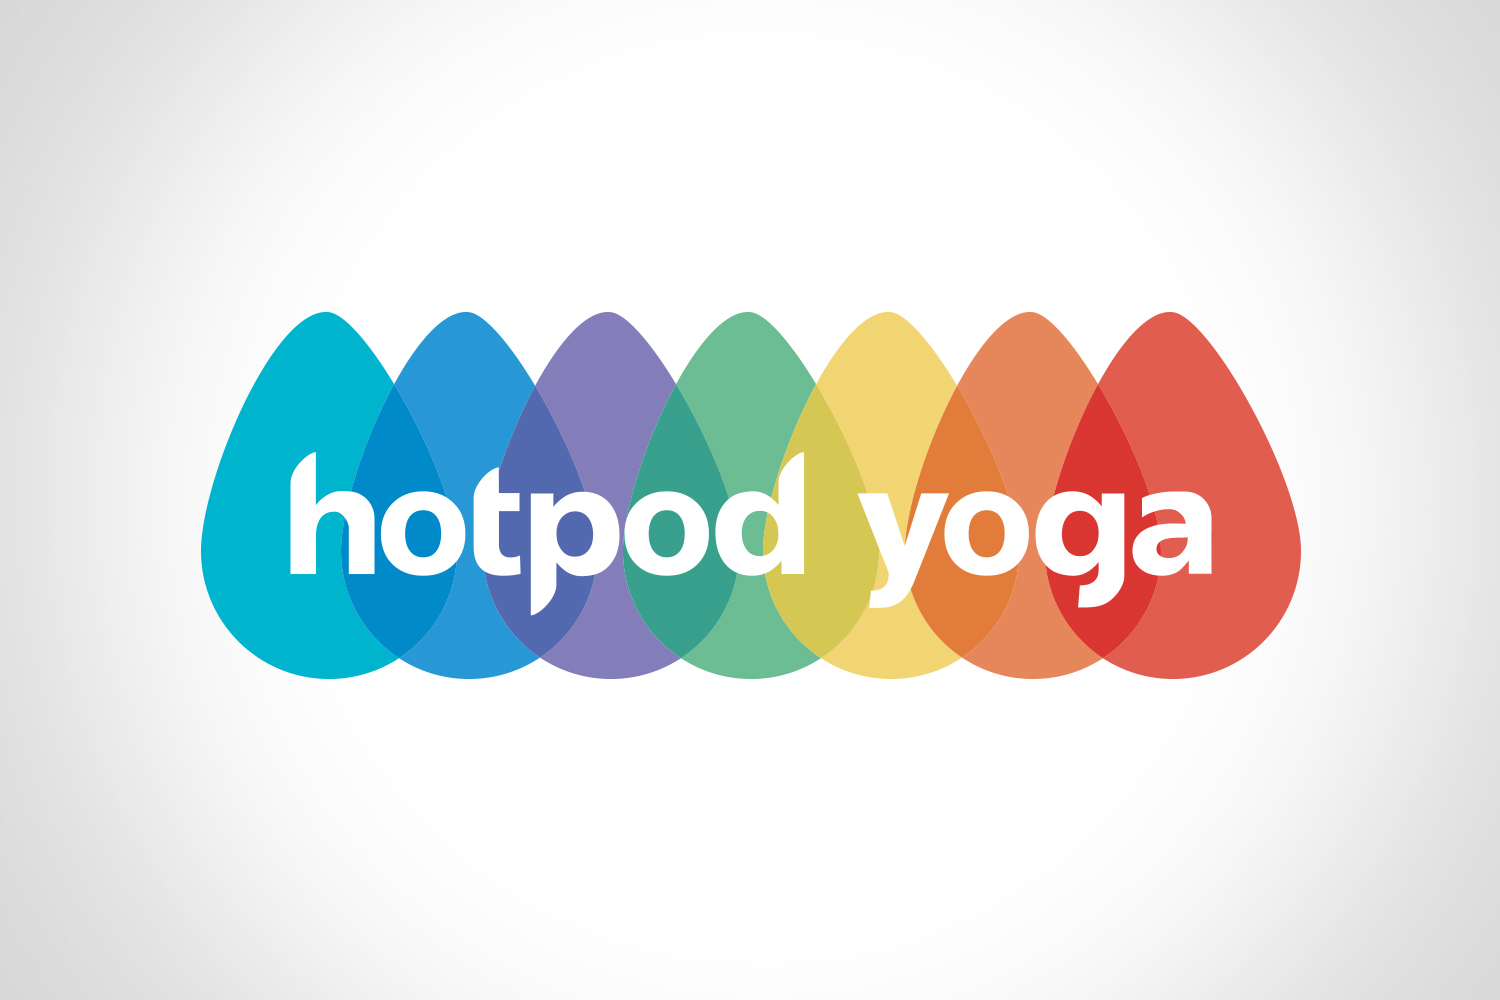 Hotpod Yoga branding & website